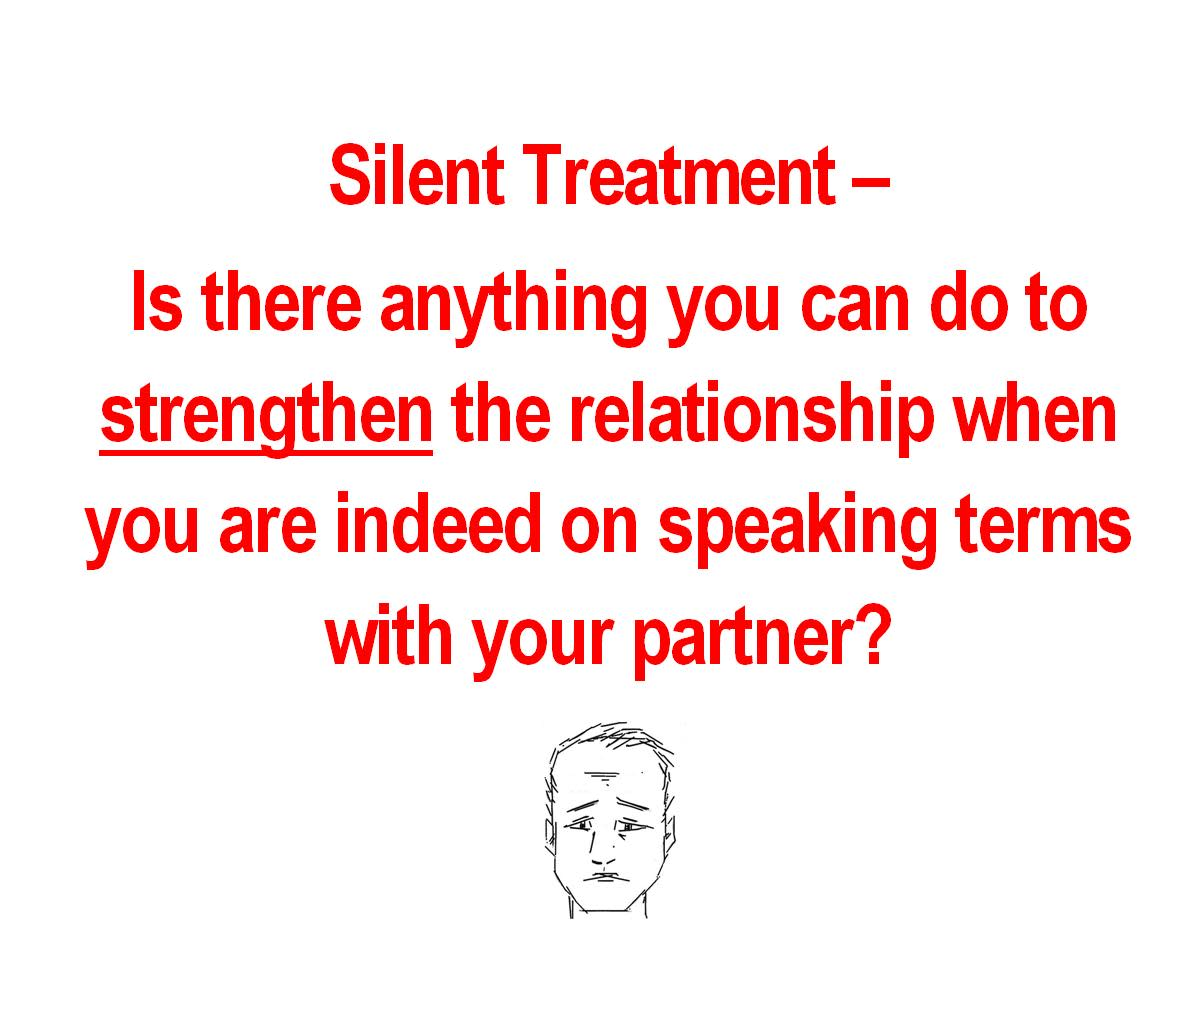 Breaking Silent Treatment - When you are on speaking terms, why not try to make the good times better.